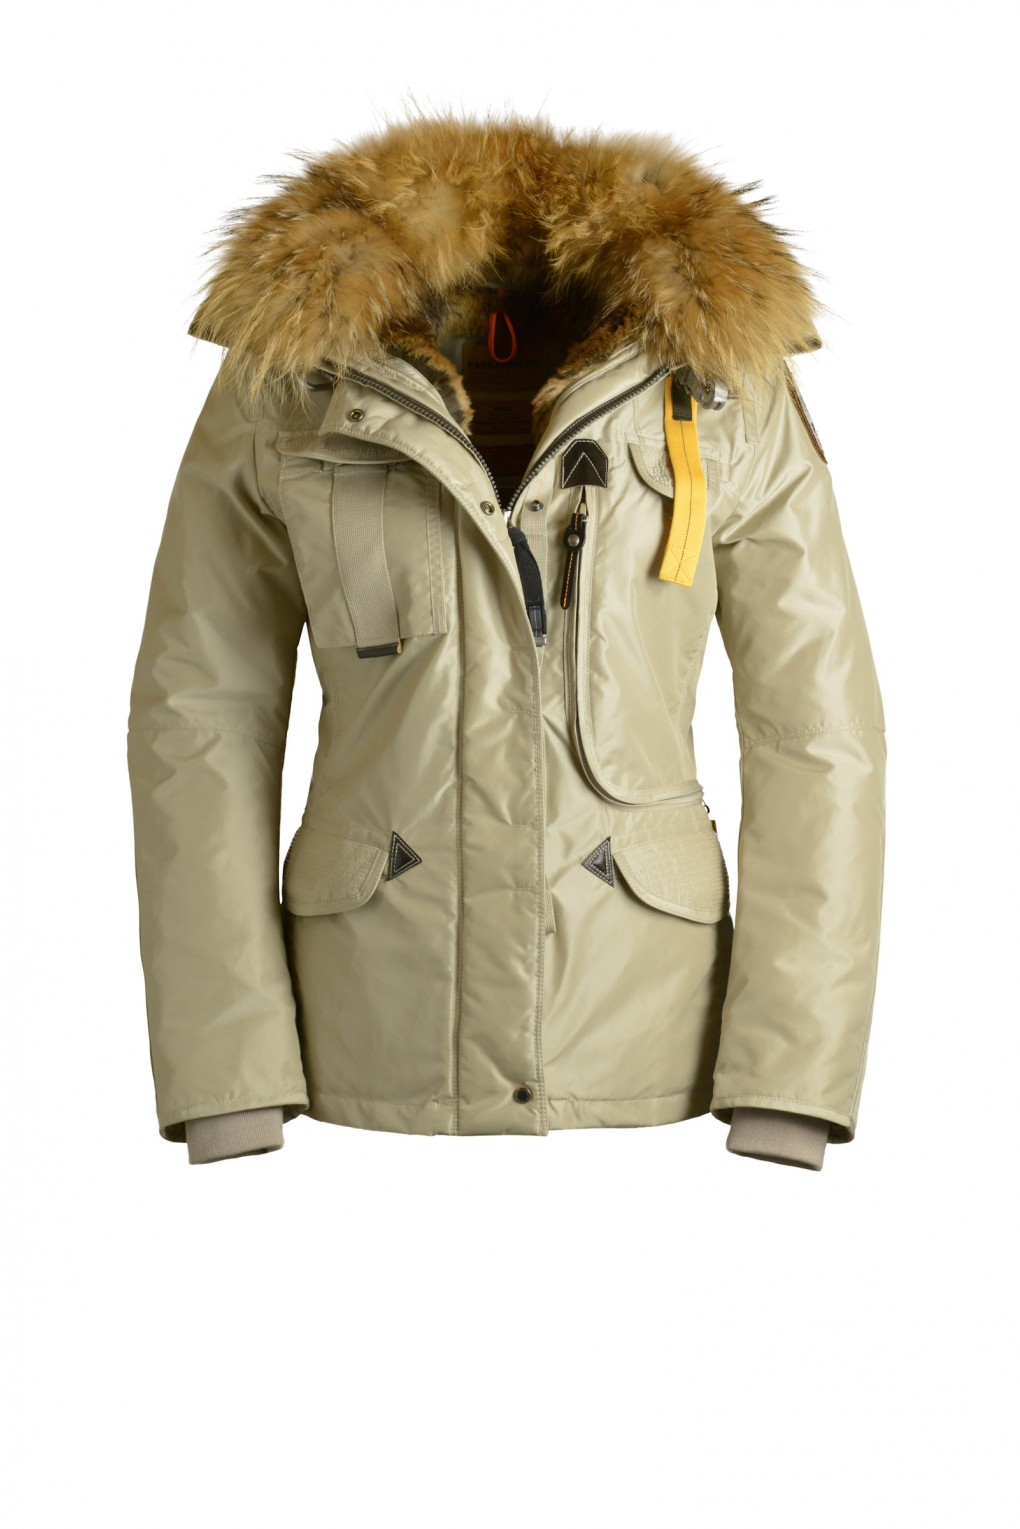 parajumpers DENALI woman outerwear Sand